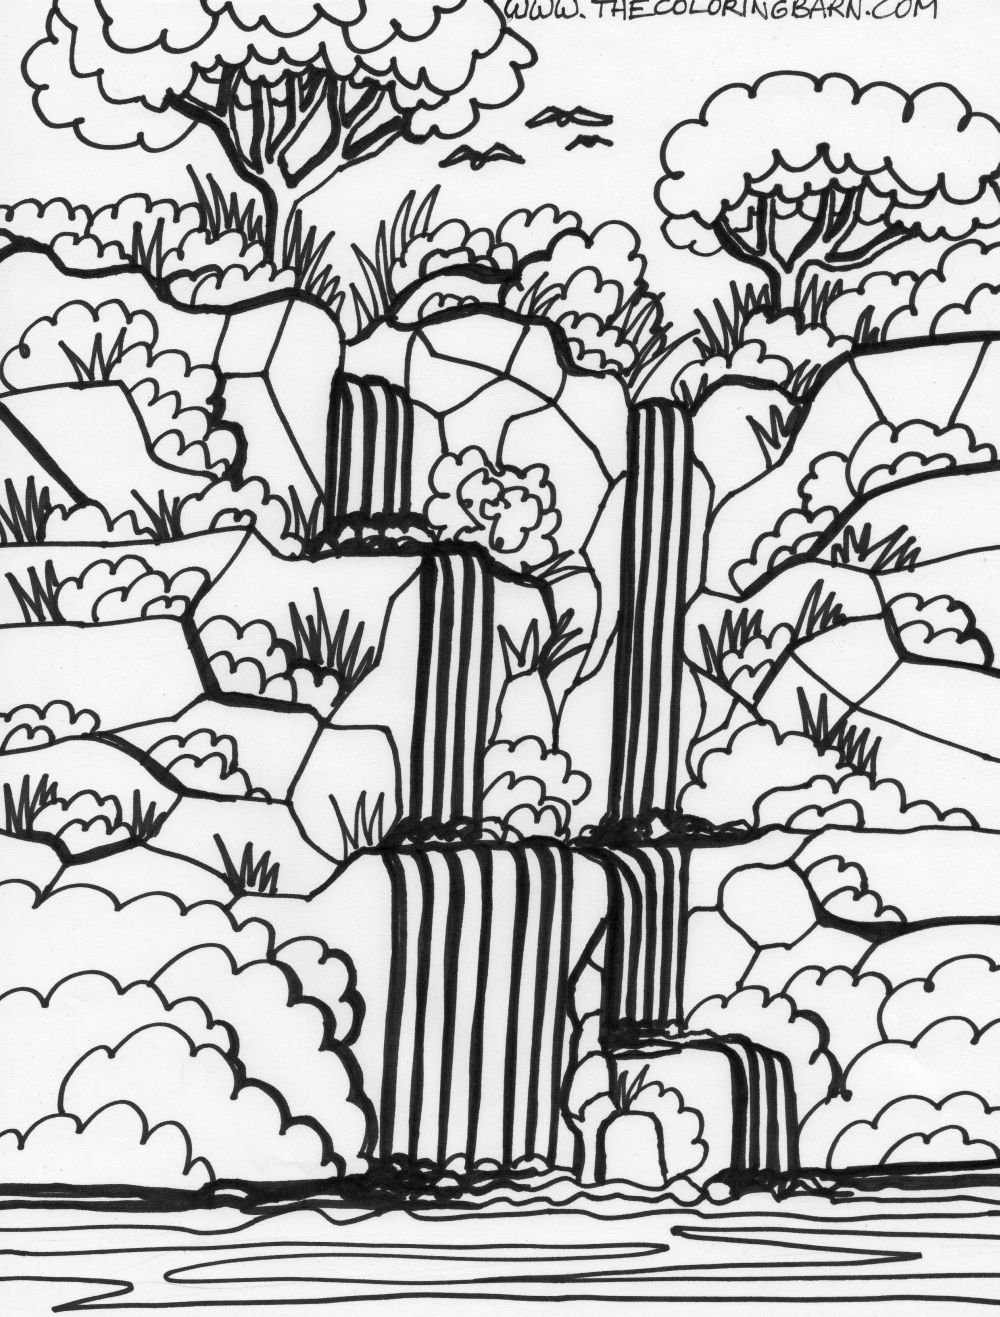 coloring sheets jungle jungle coloring pages best coloring pages for kids coloring sheets jungle